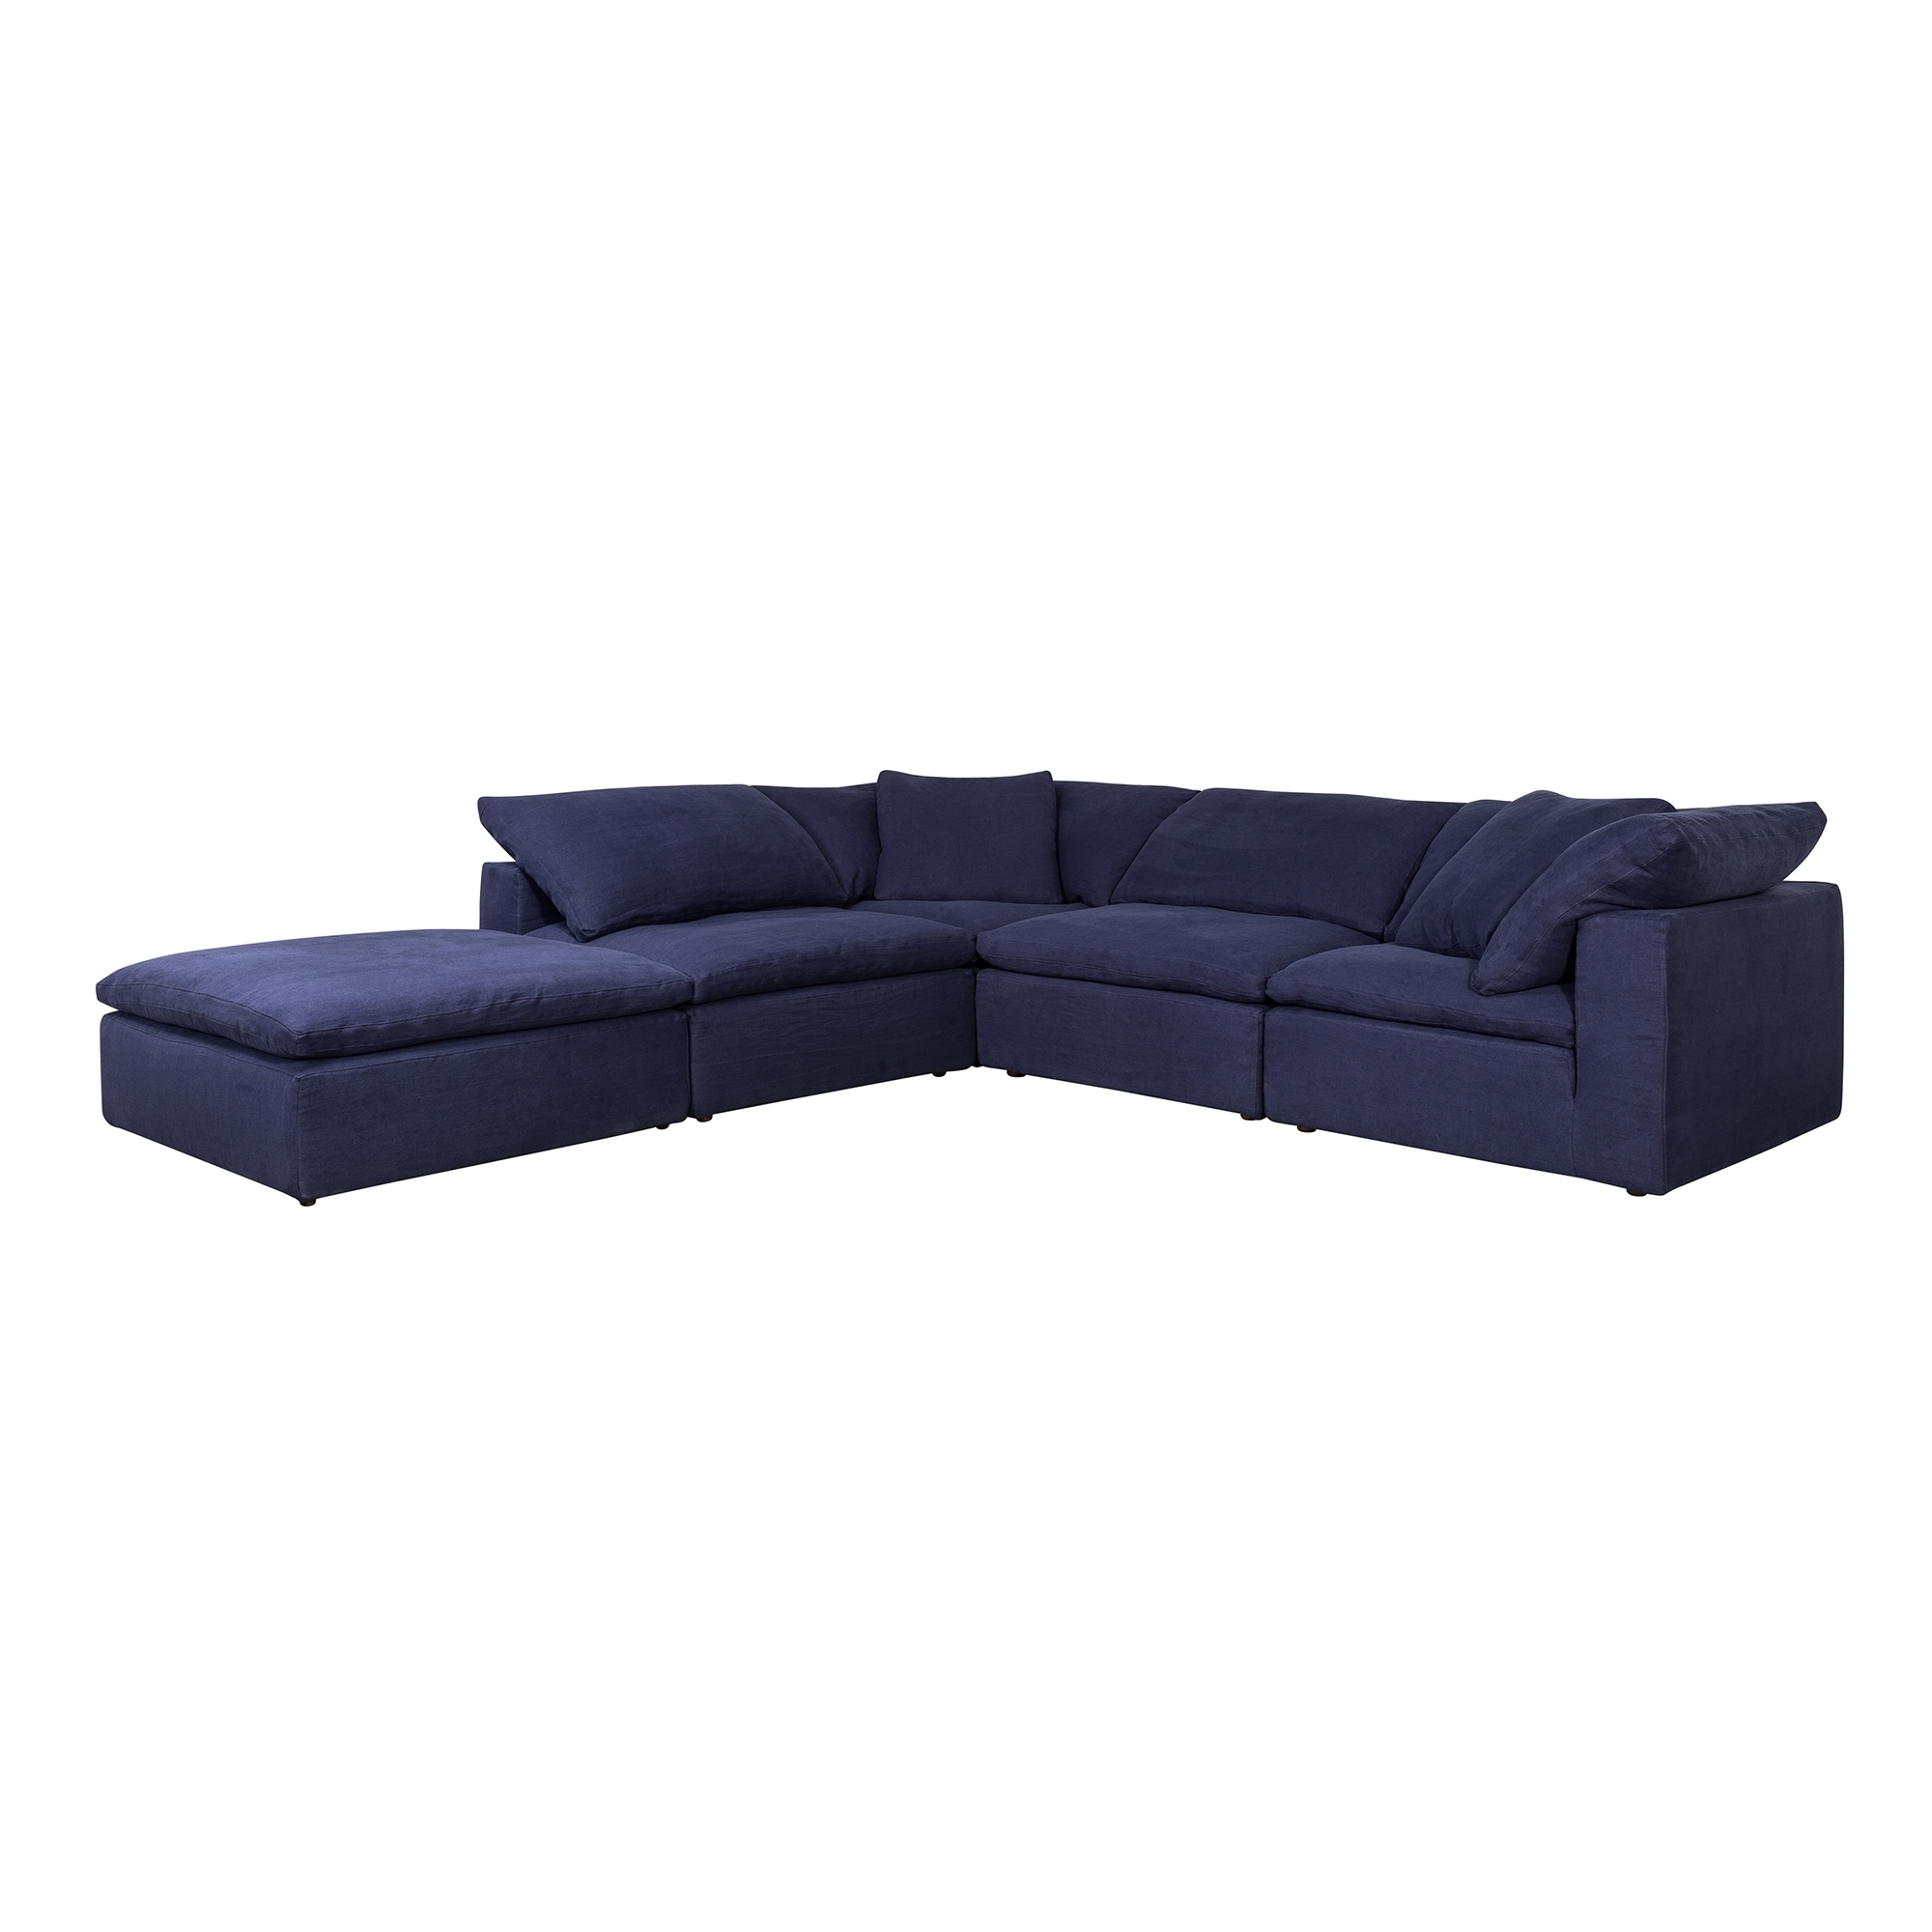 Marlowe Small Modular Sofa – Furniture – Coco Republic – Brands In Latest Small Modular Sofas (View 6 of 20)